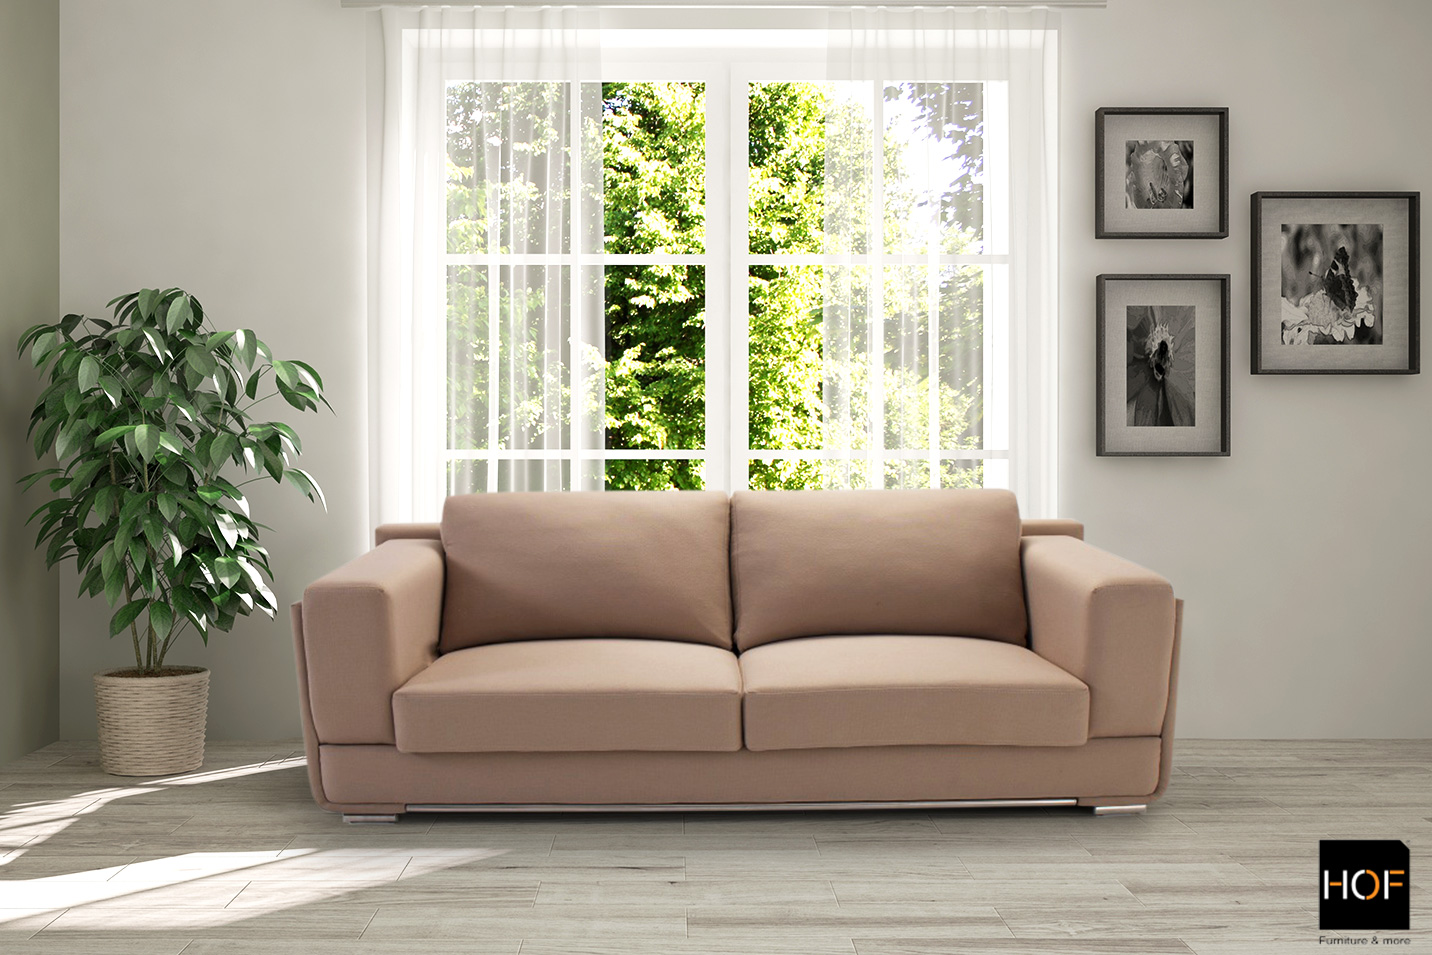 Sofas Online Hof India Part 2